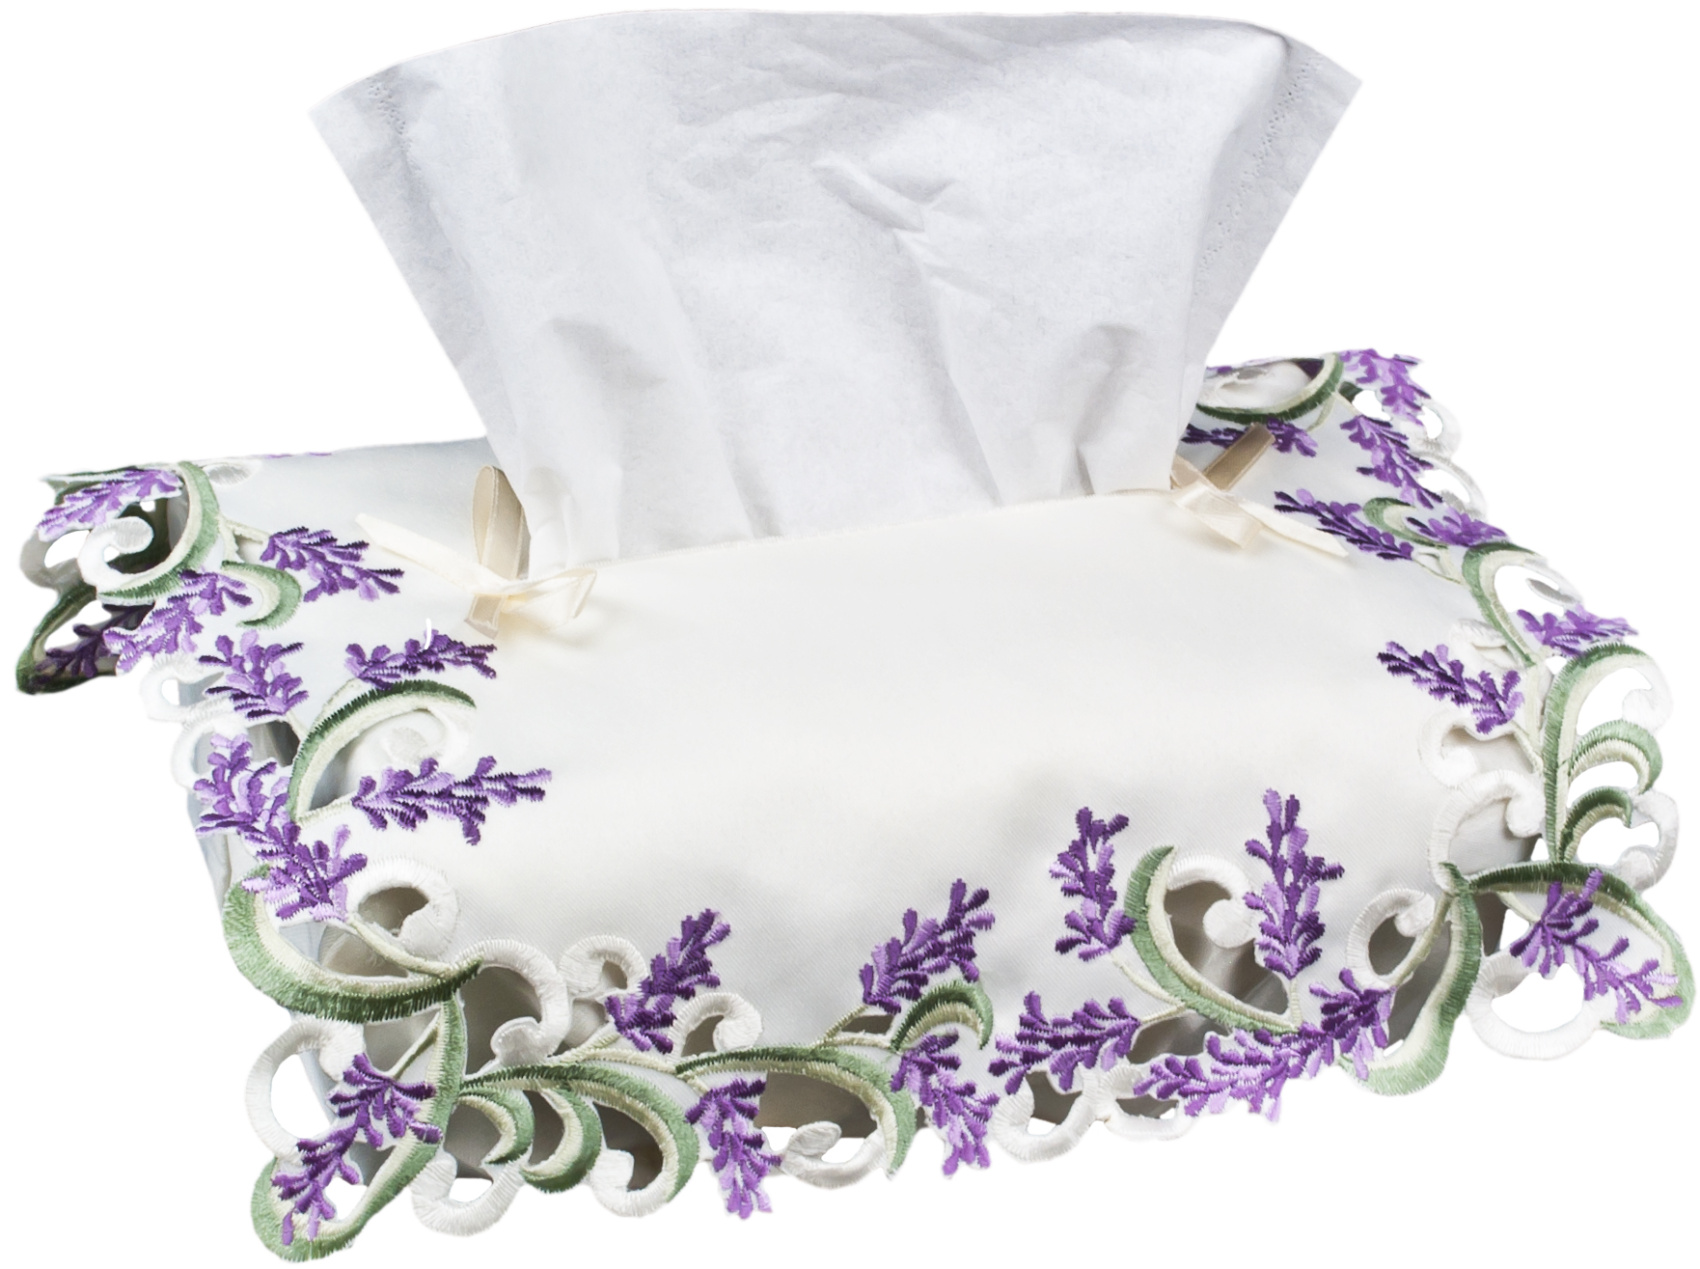 Includes Tissue Lilacs Designer fabric tissue box cover